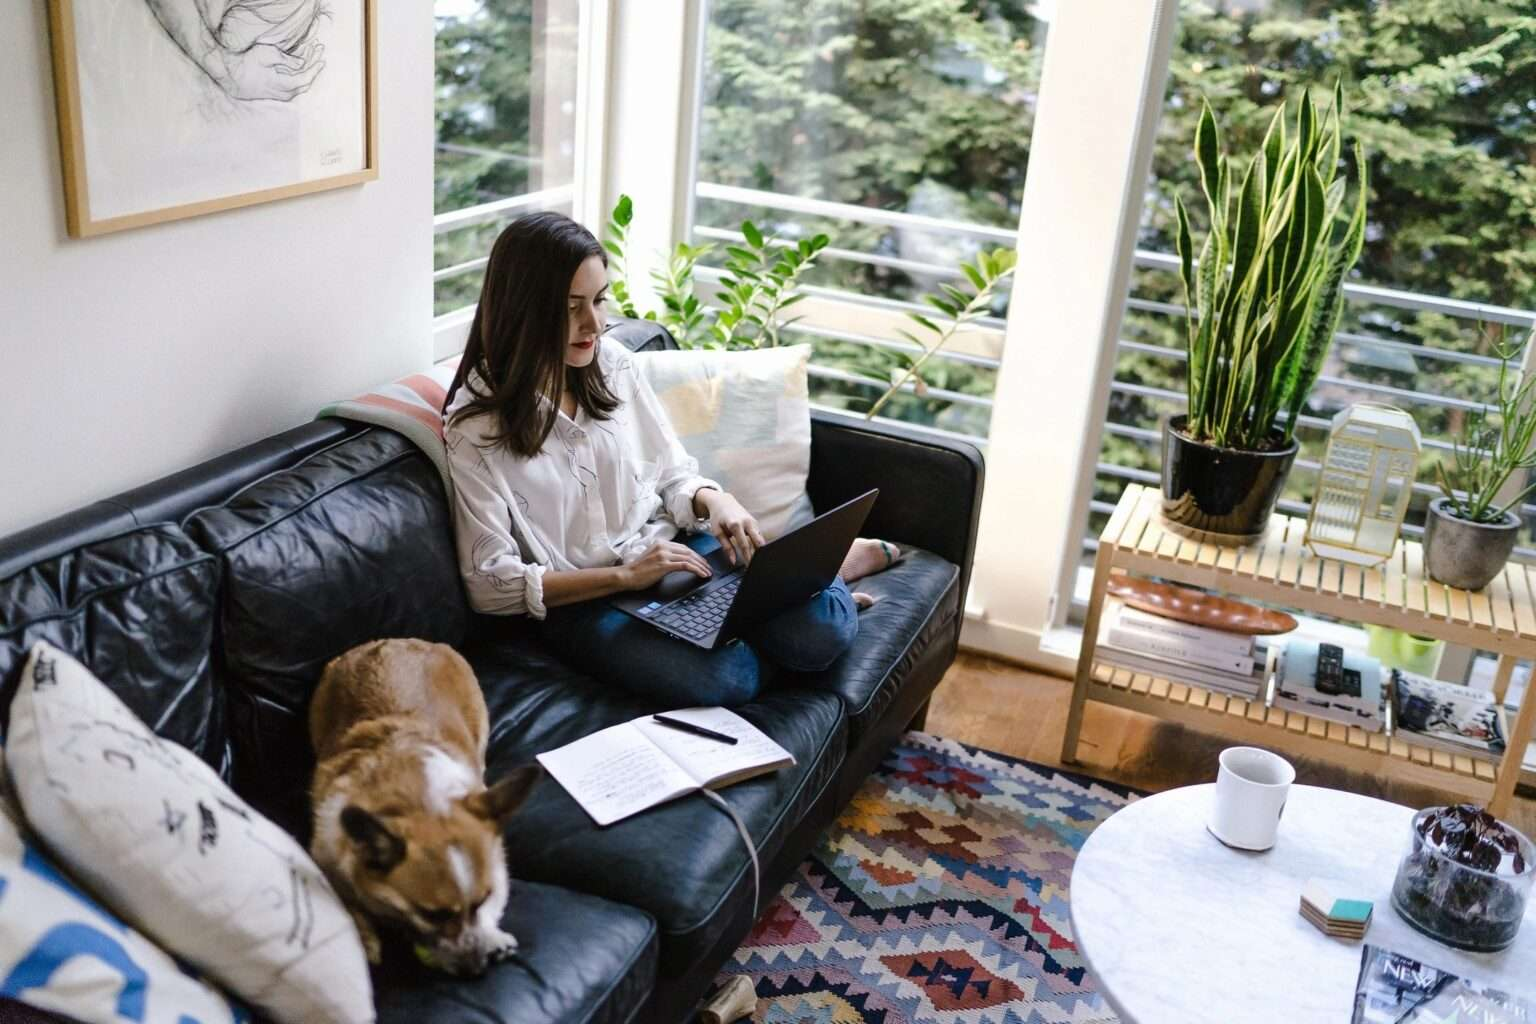 a girl and a dog sitting on the sofa in the living room